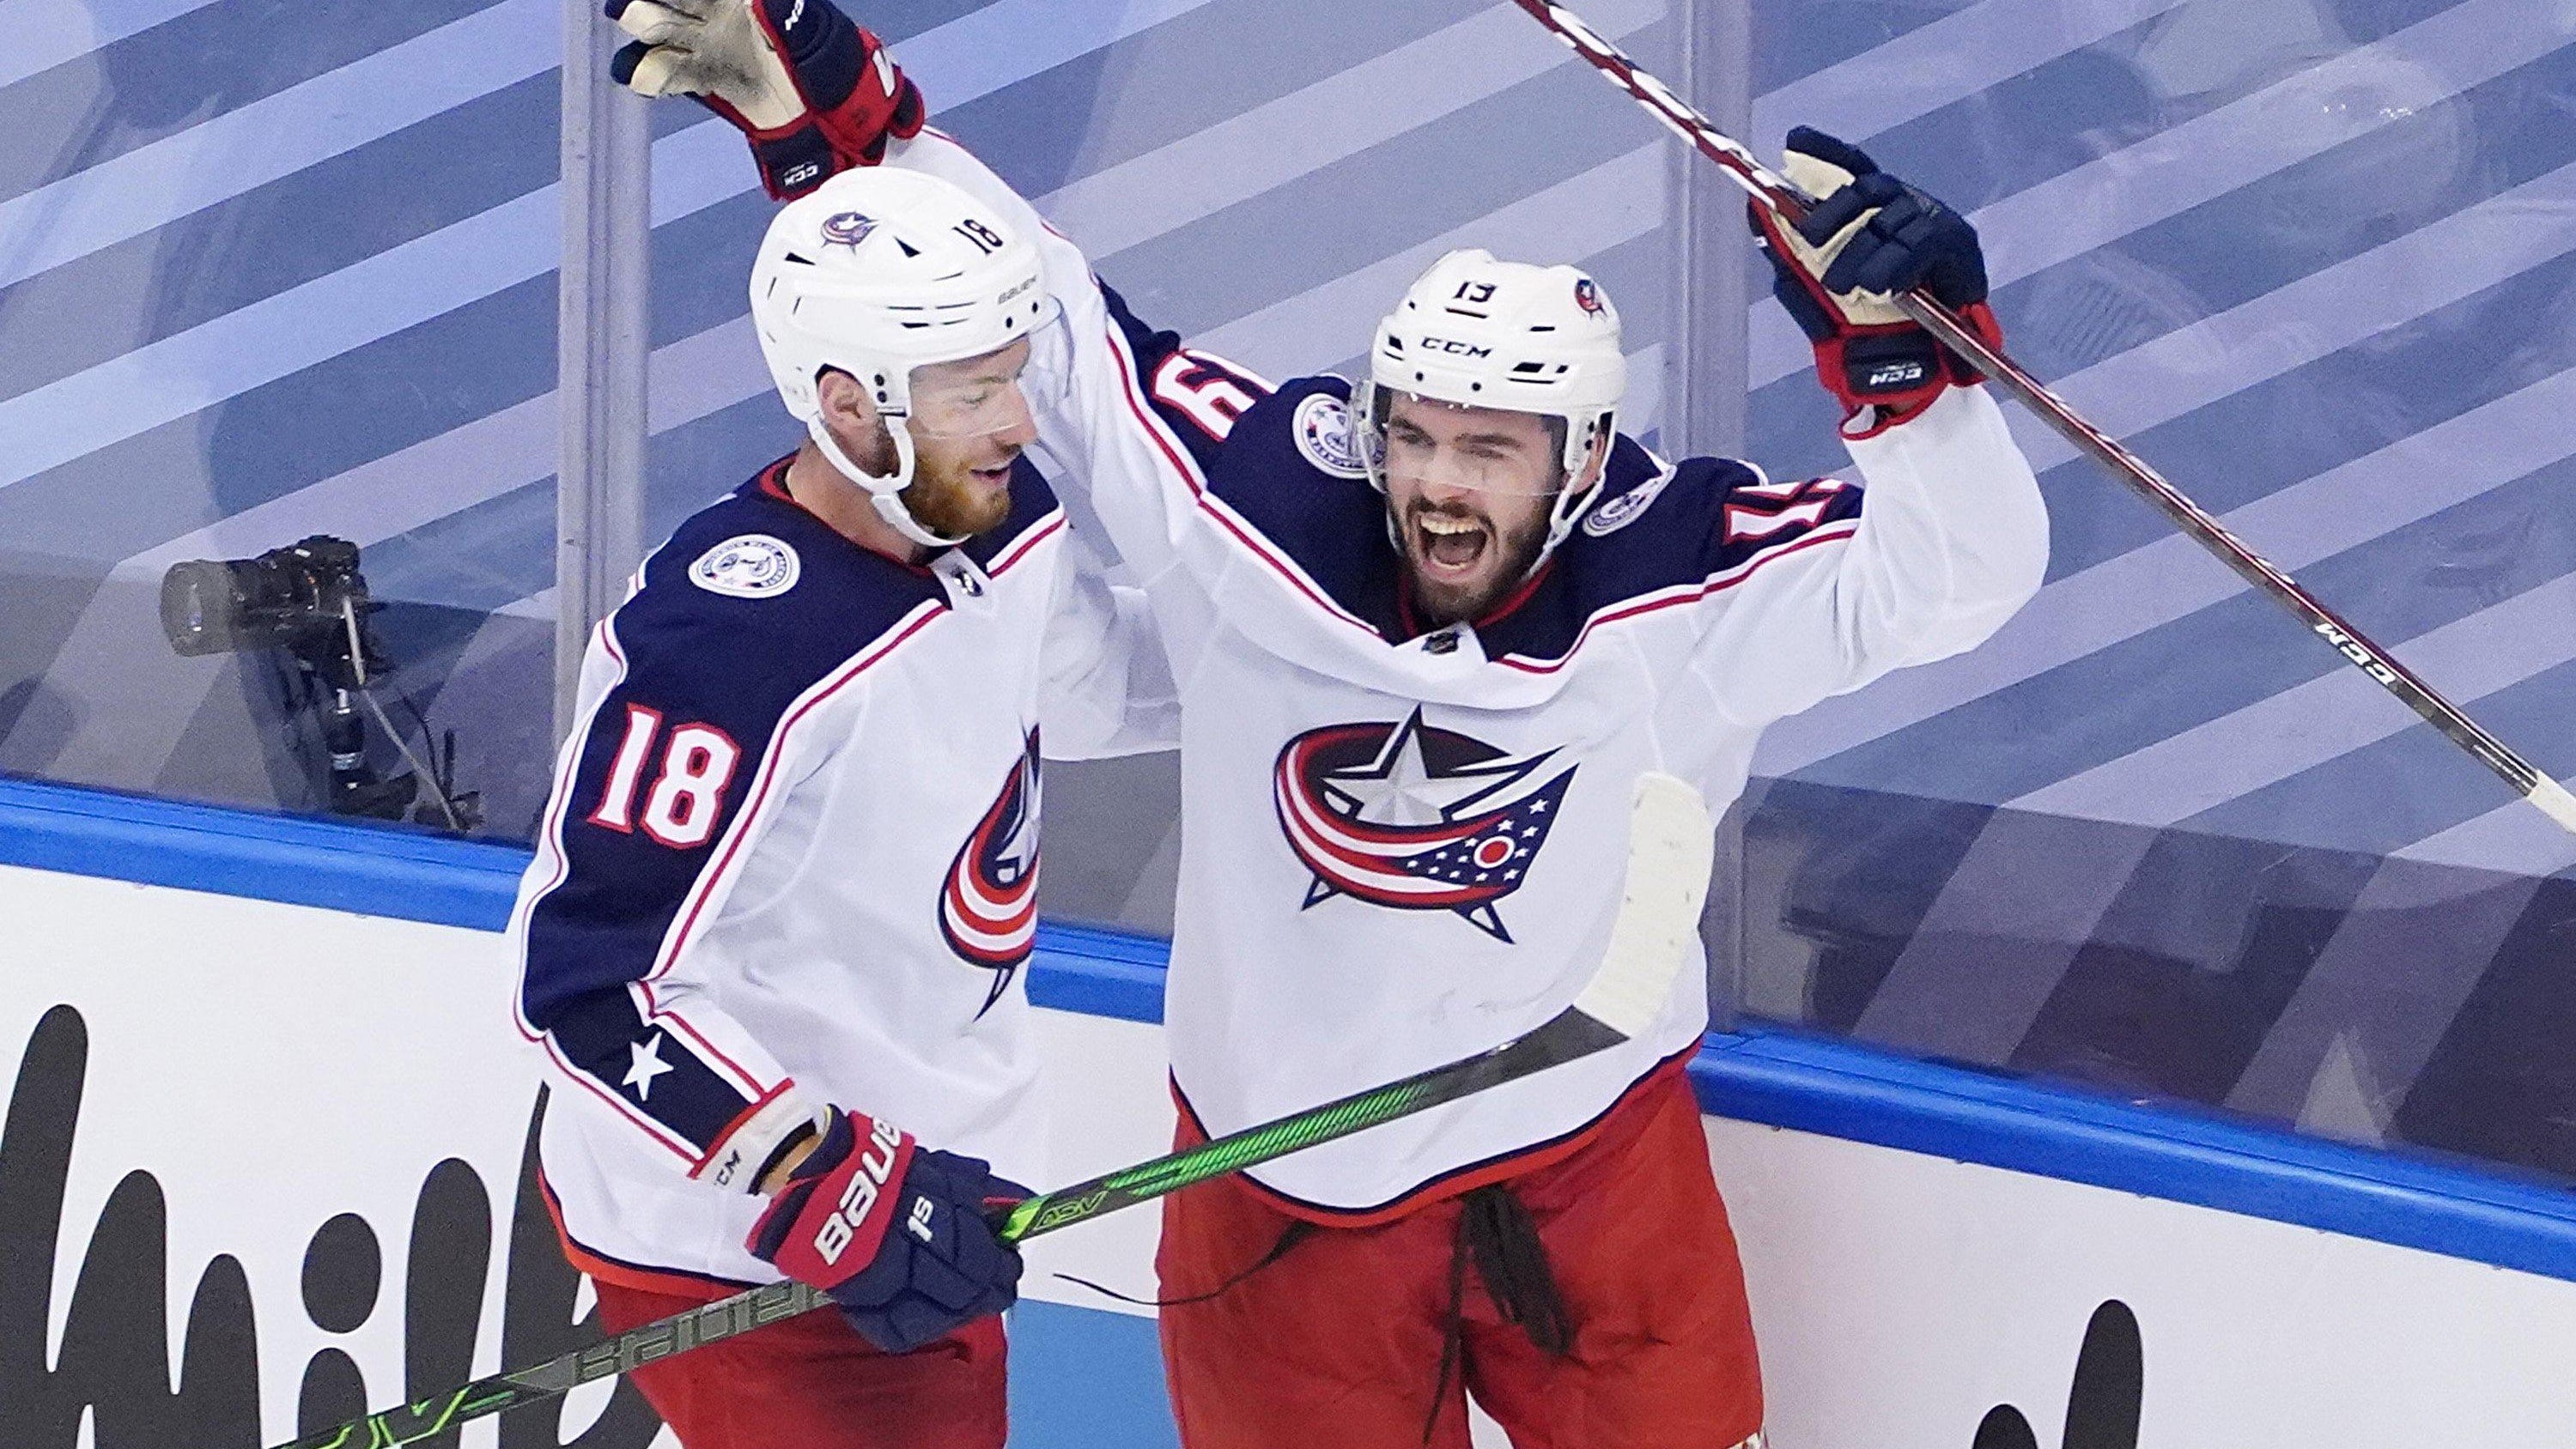 Columbus Blue Jackets Say Much Has Changed Since Historic Series Win Over Lightning Last Year